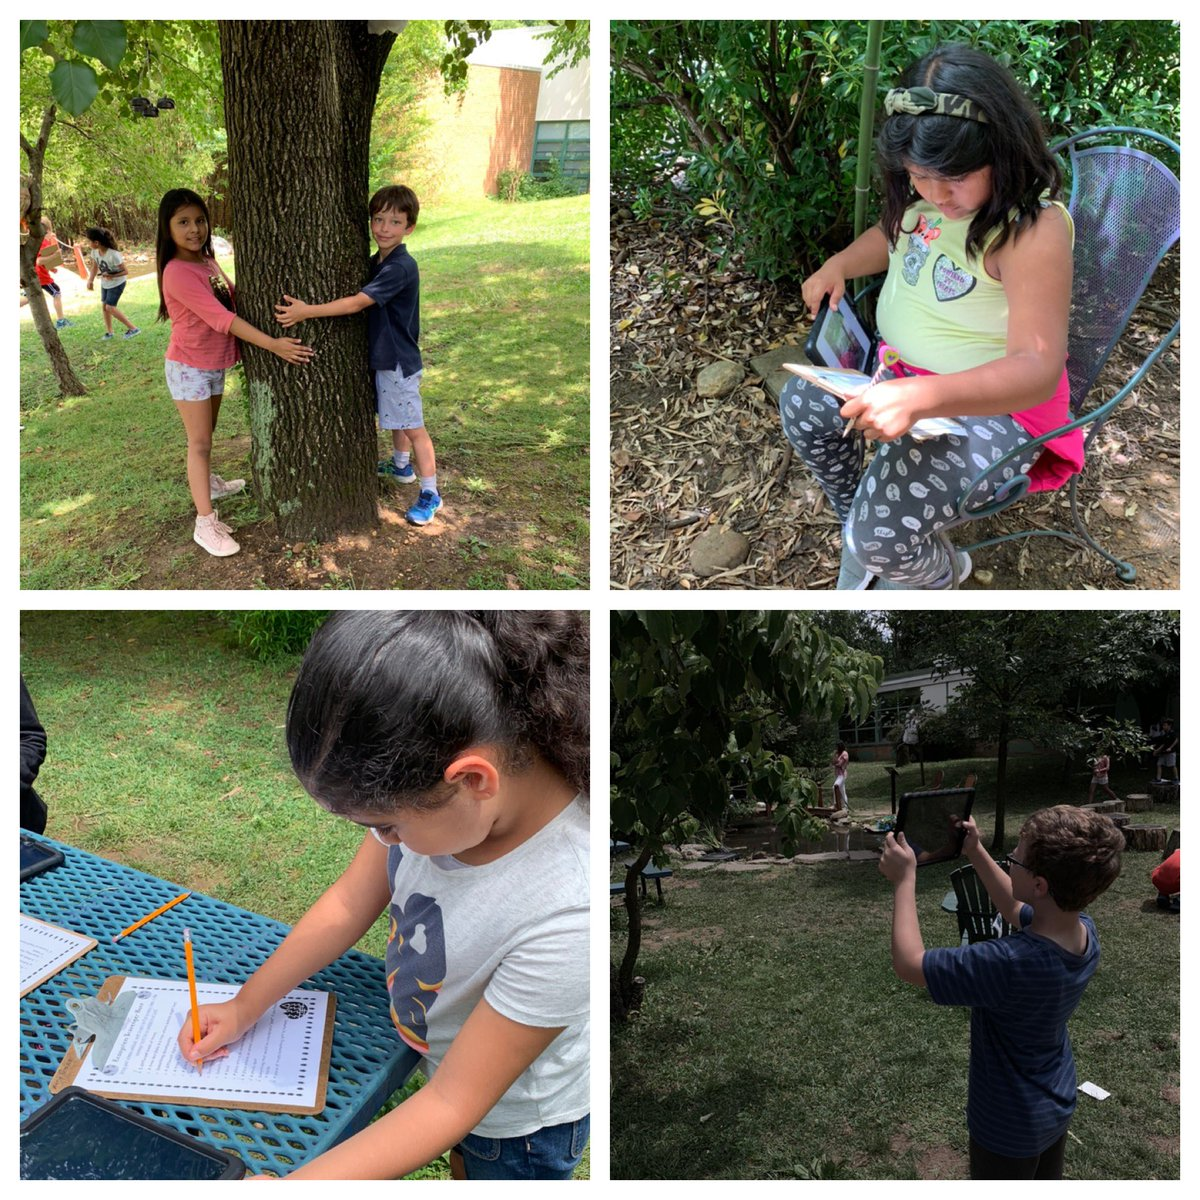 Soaking up the last moments in our outdoor classroom before summer break! <a target='_blank' href='http://twitter.com/CampbellAPS'>@CampbellAPS</a> <a target='_blank' href='https://t.co/tu9TdZ8t03'>https://t.co/tu9TdZ8t03</a>